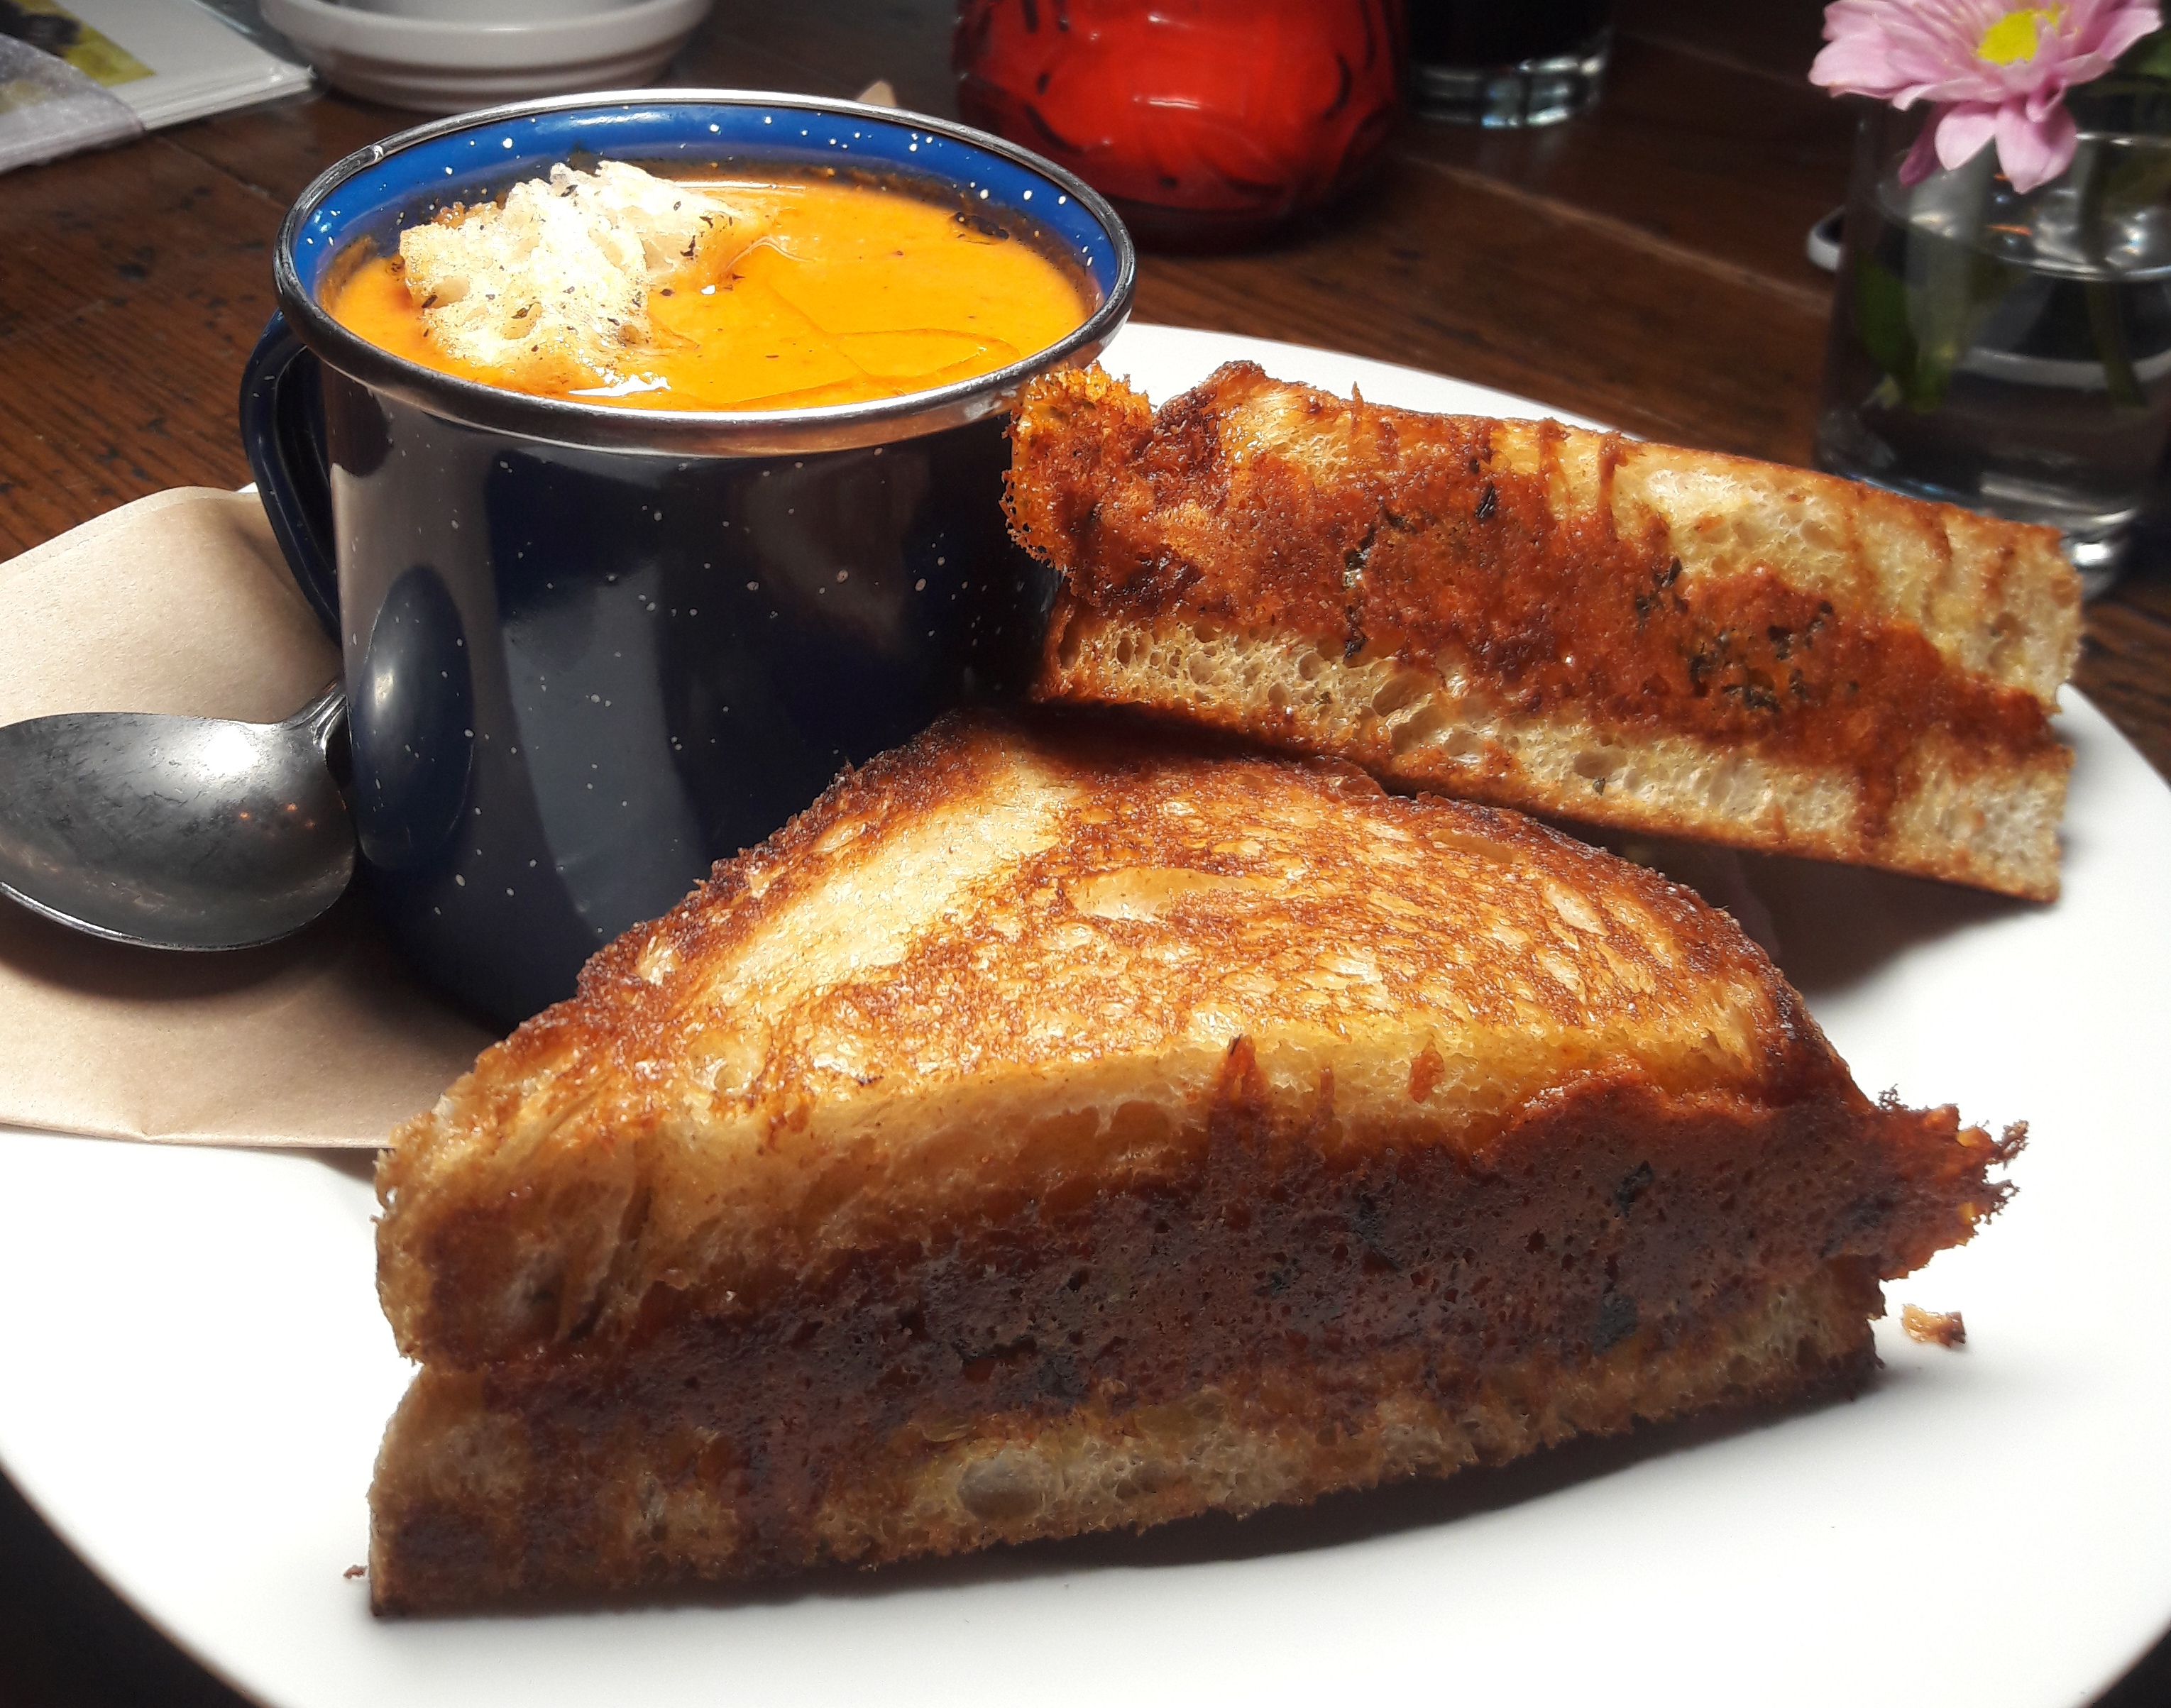 Where to Find Super-Nostalgic Grilled Cheese and Tomato Soup in Portland